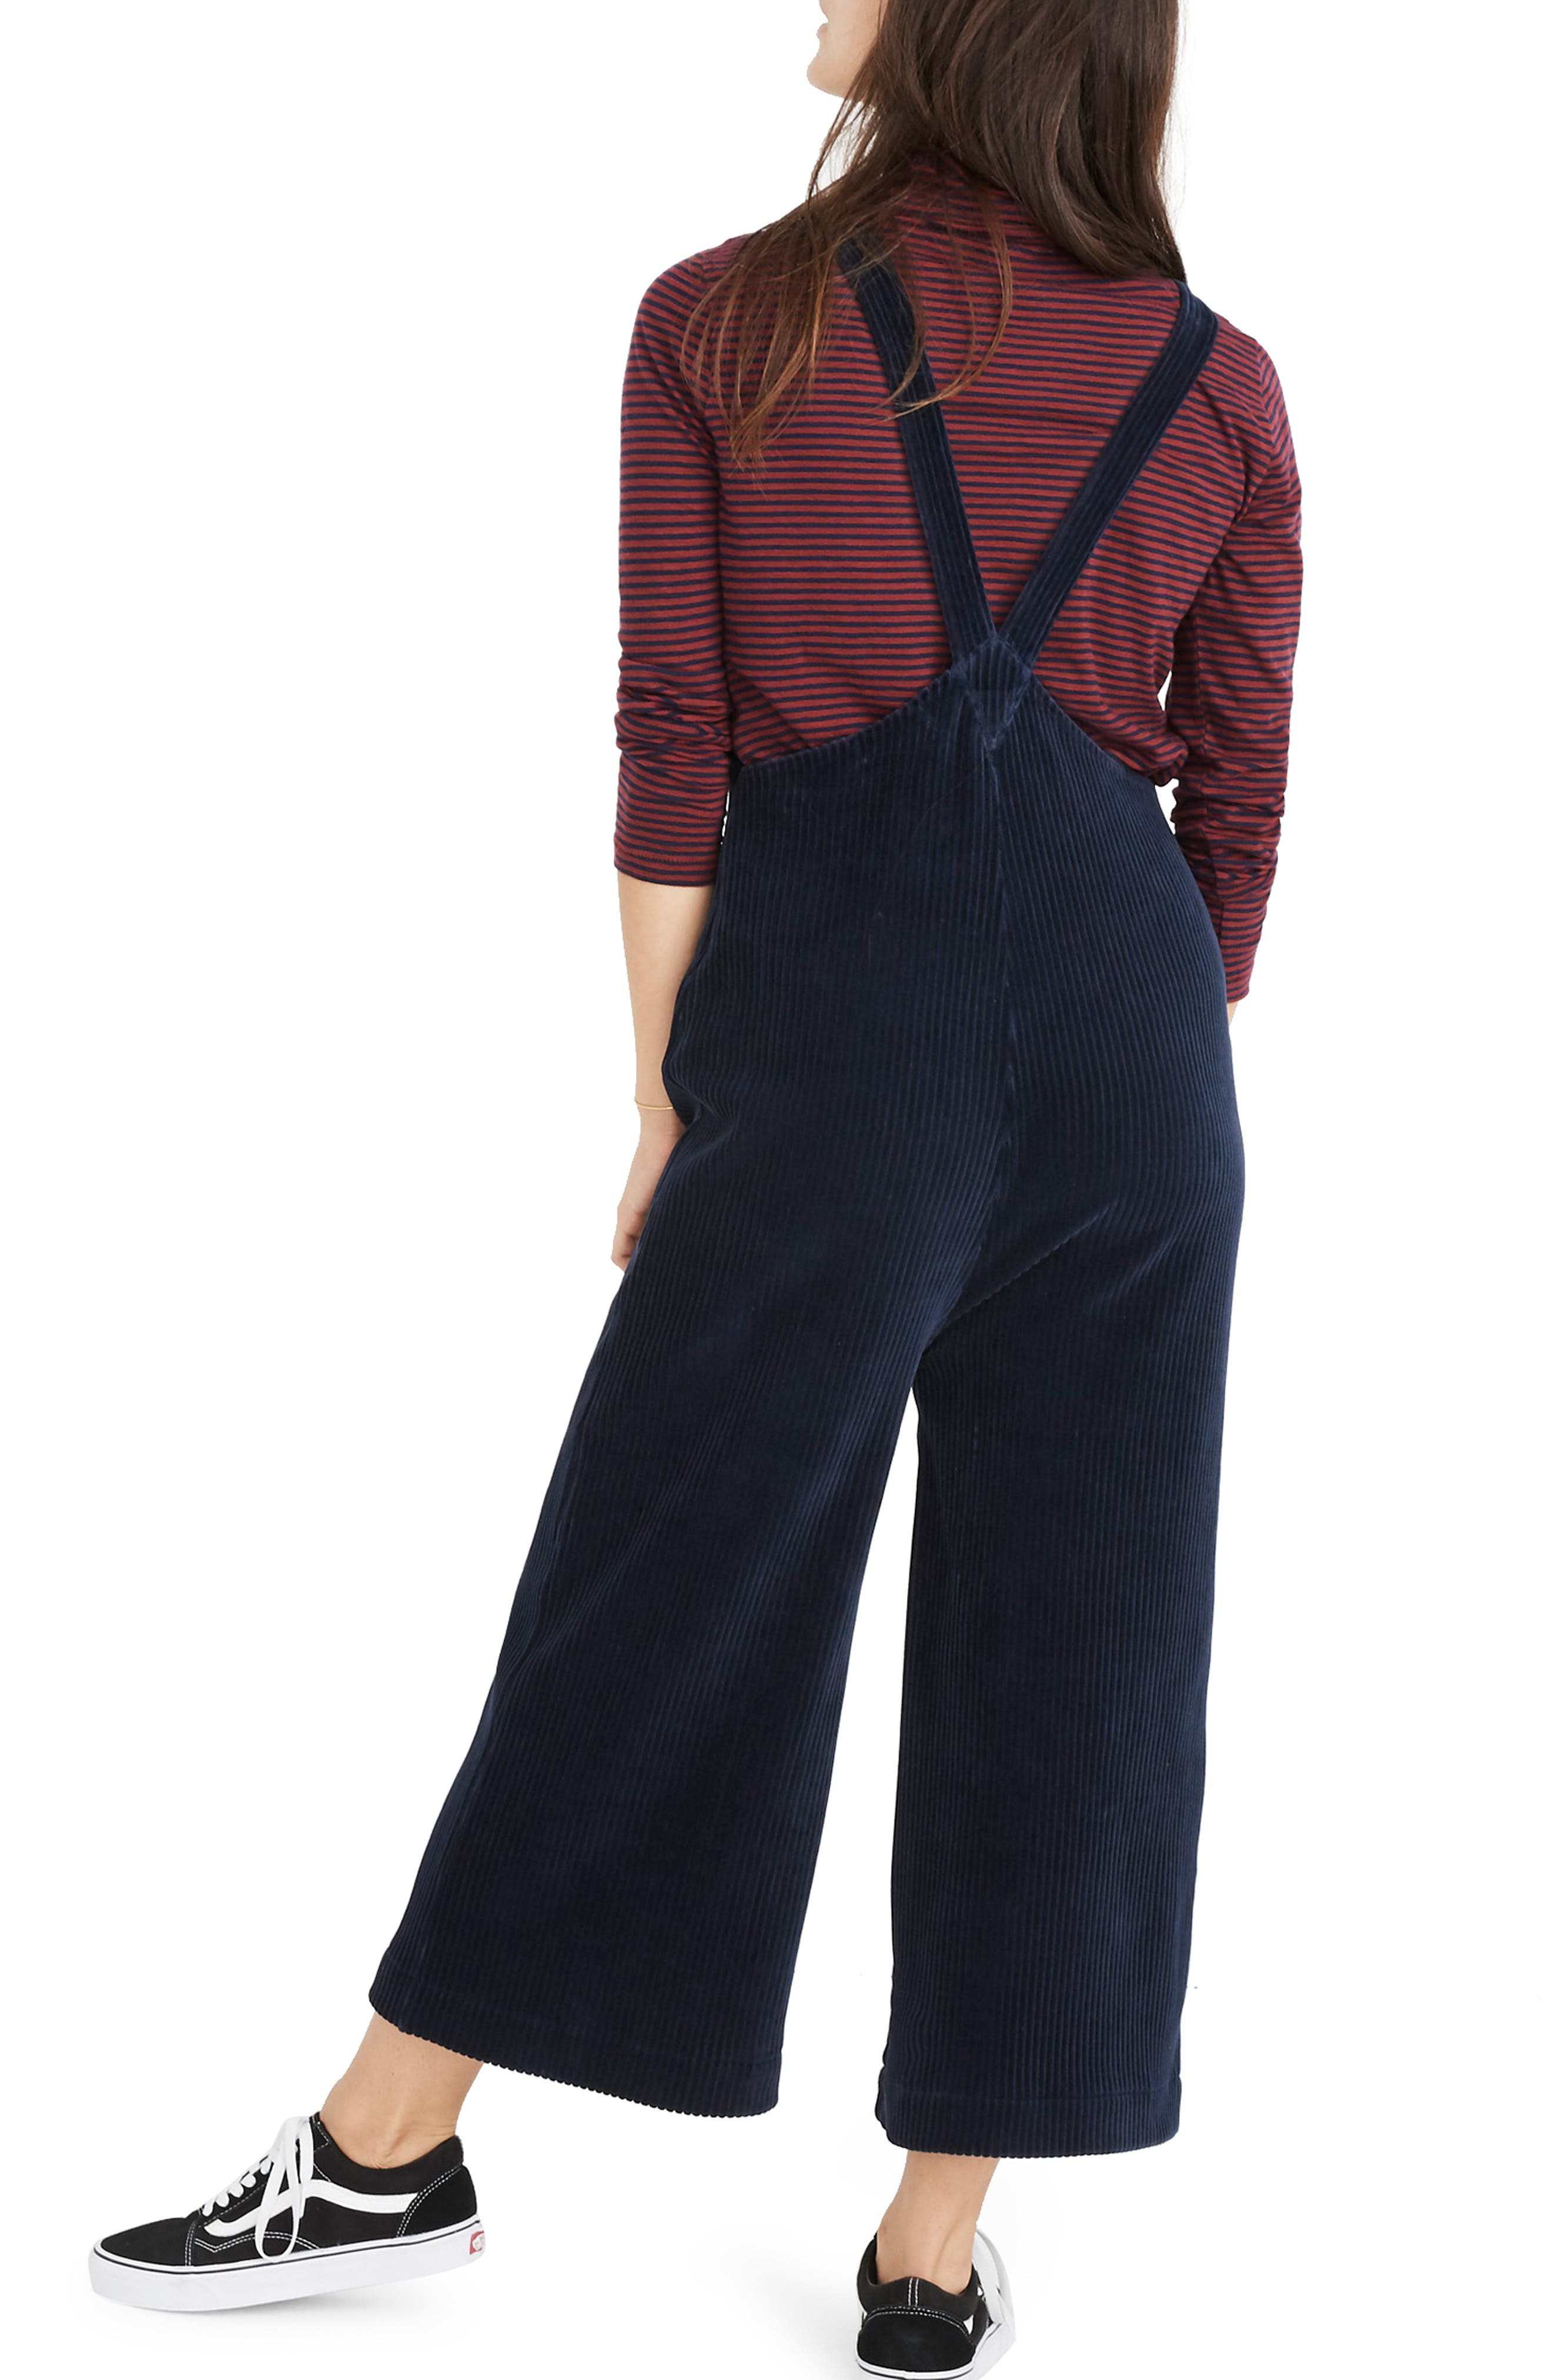 MADEWELL,                             Texture & Thread Velour Corduroy Overalls,                             Alternate thumbnail 2, color,                             400